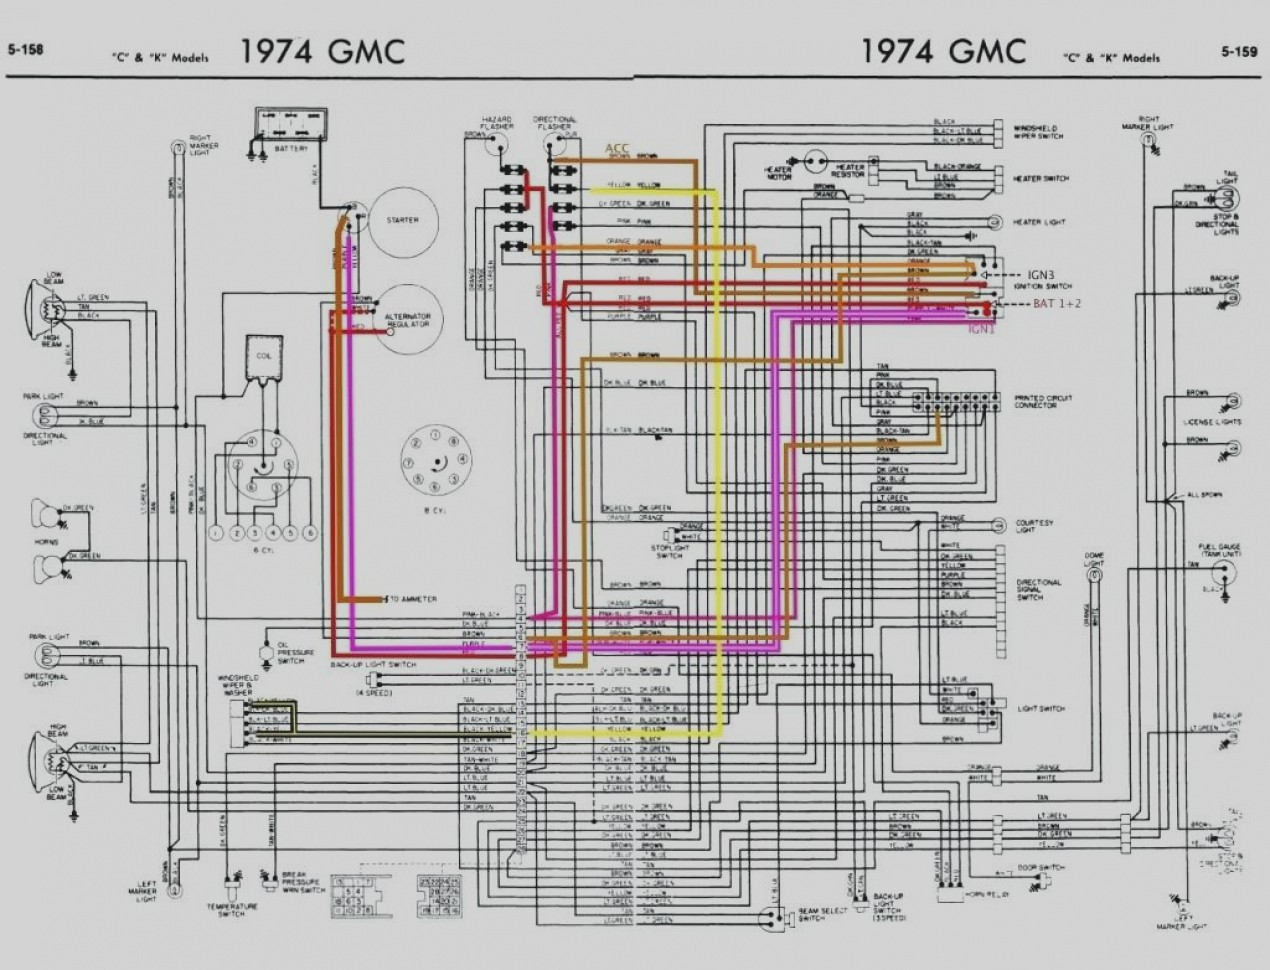 Diagram Lug Indoor Main Wiring Br24lsp70 Diy Enthusiasts Ge Tl412cp Portal U2022 Rh Getcircuitdiagram Today Electrical Load Center Diagrams Panel